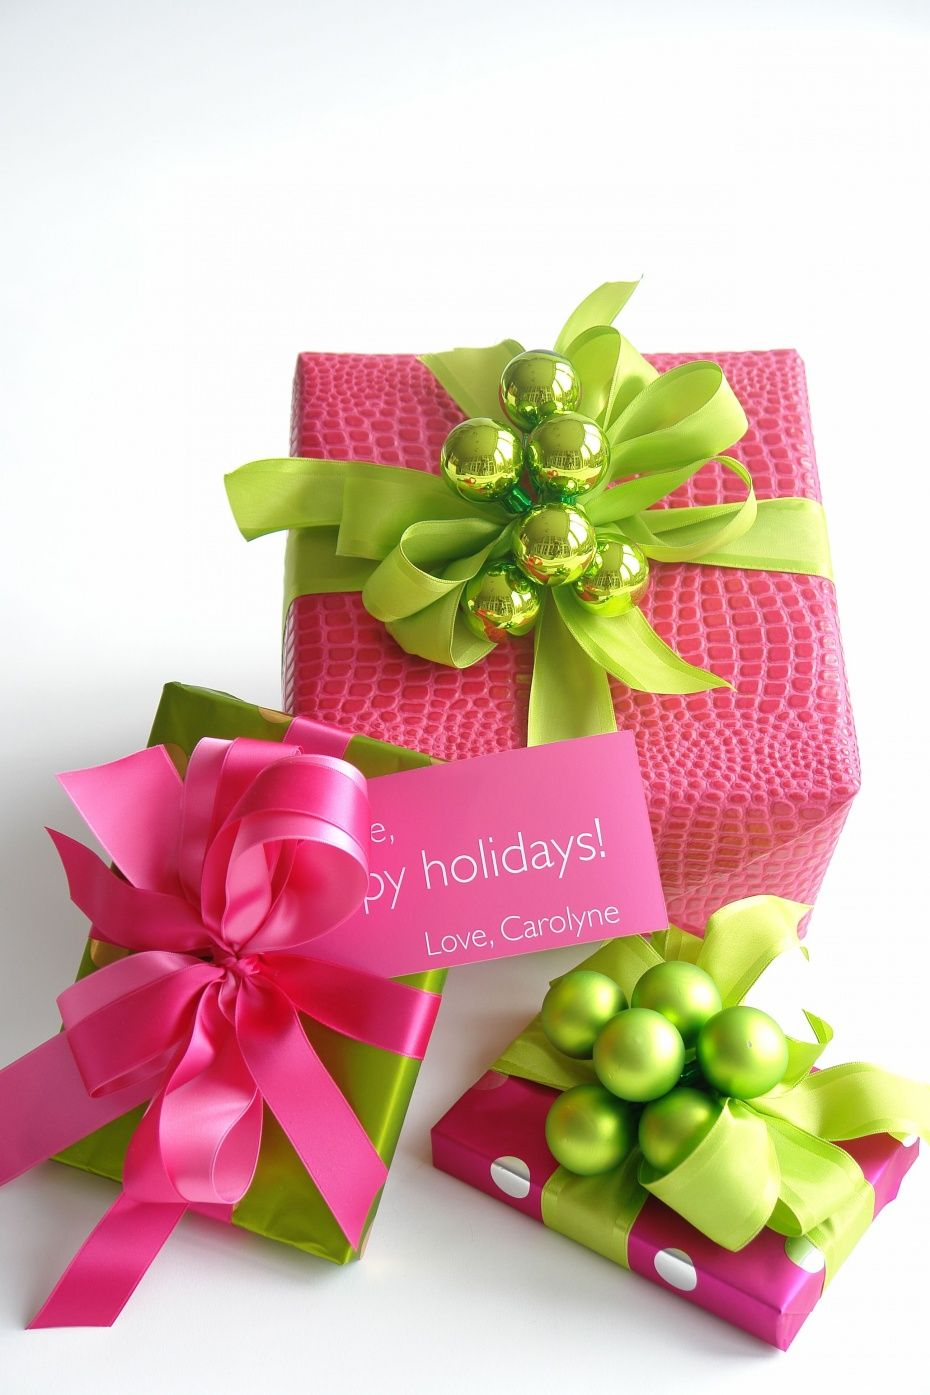 Carolyne Roehm Gift Wrap - pink and green wrapping